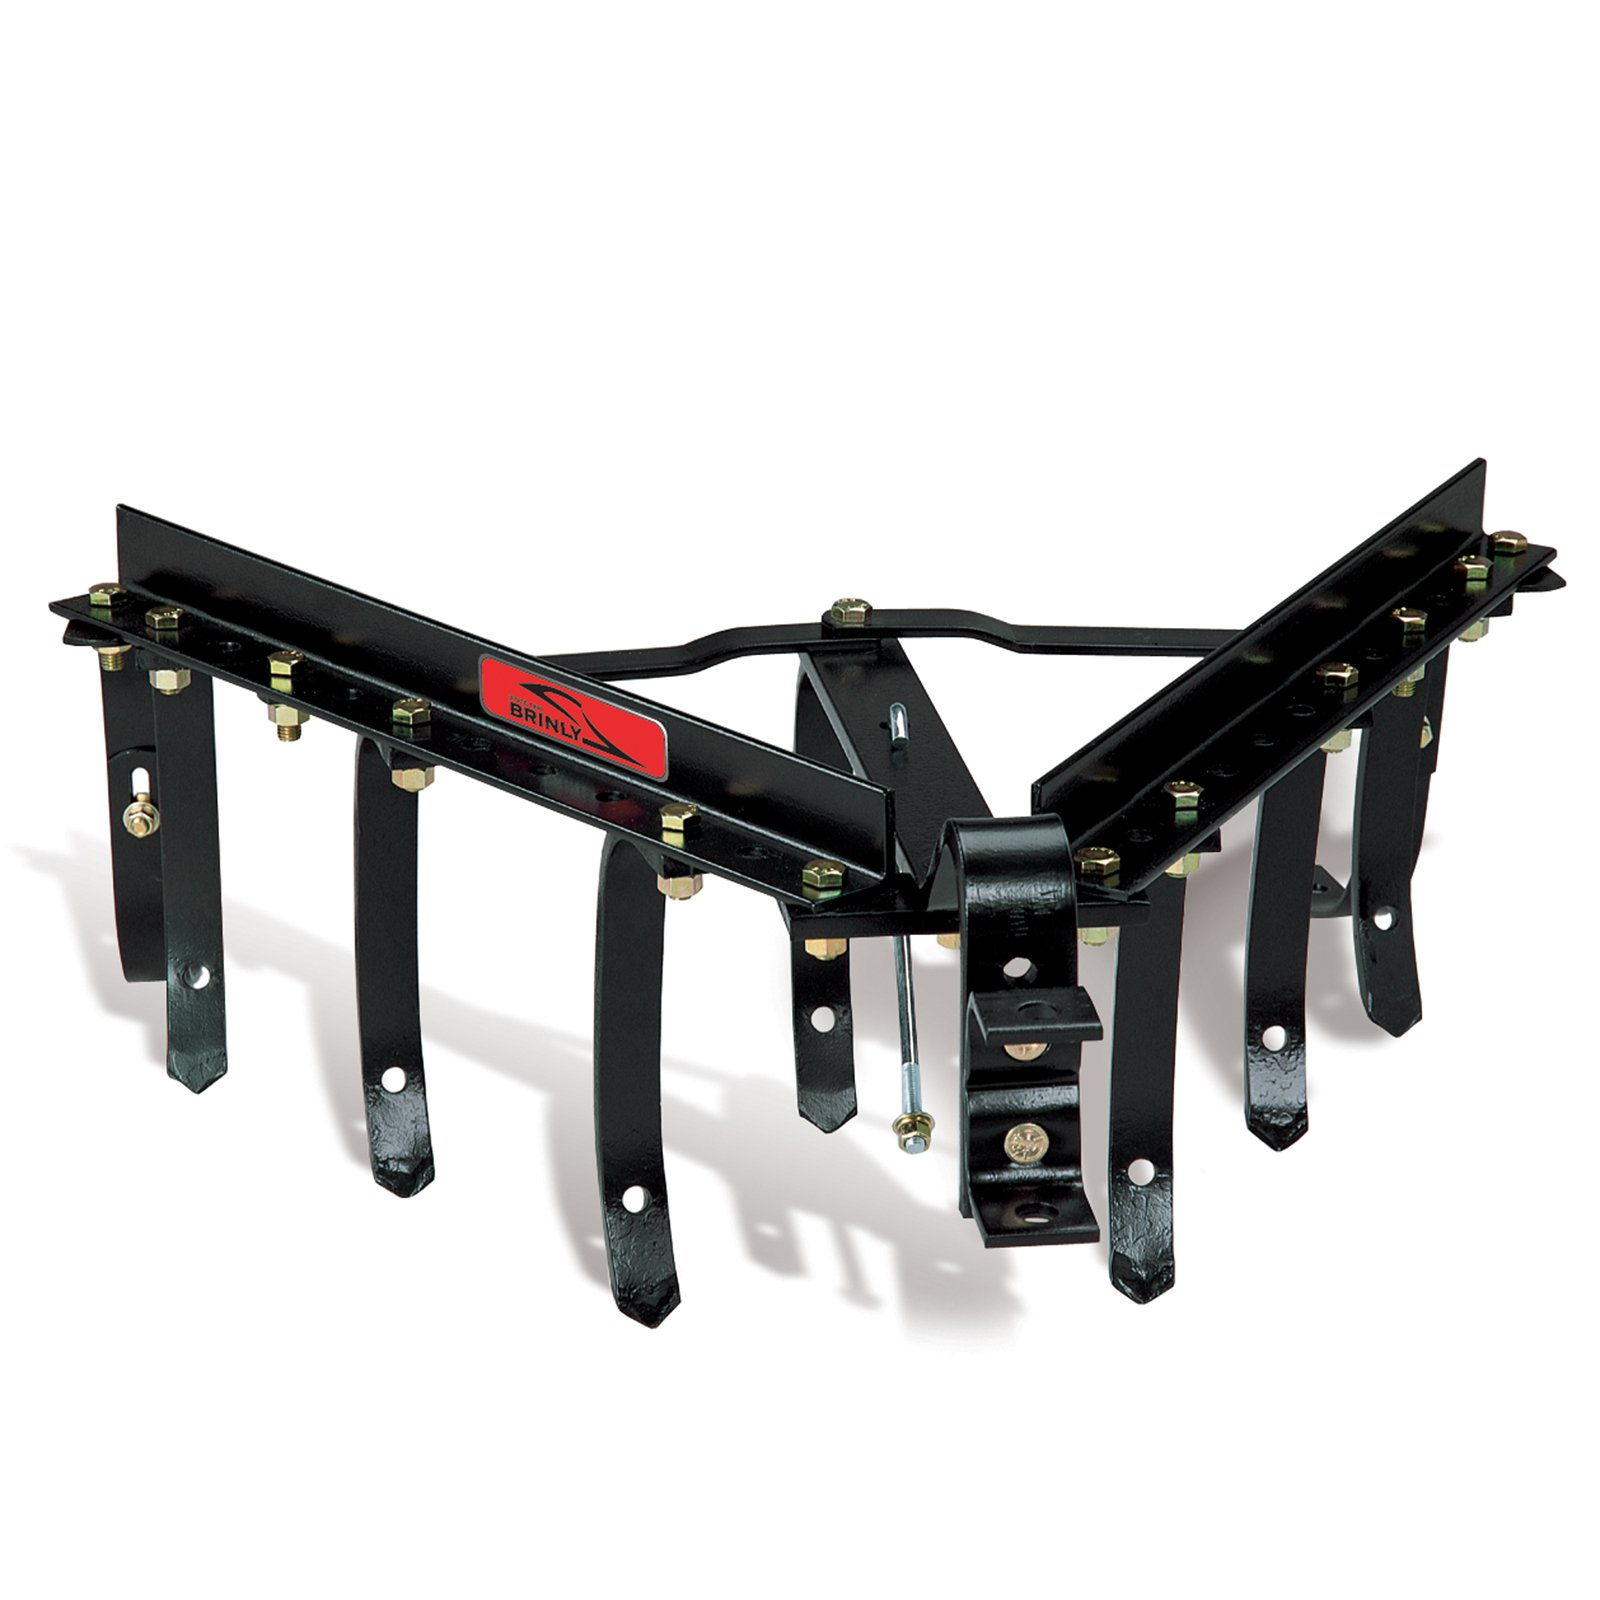 Brinly Tow-Behind Sleeve Hitch Cultivator